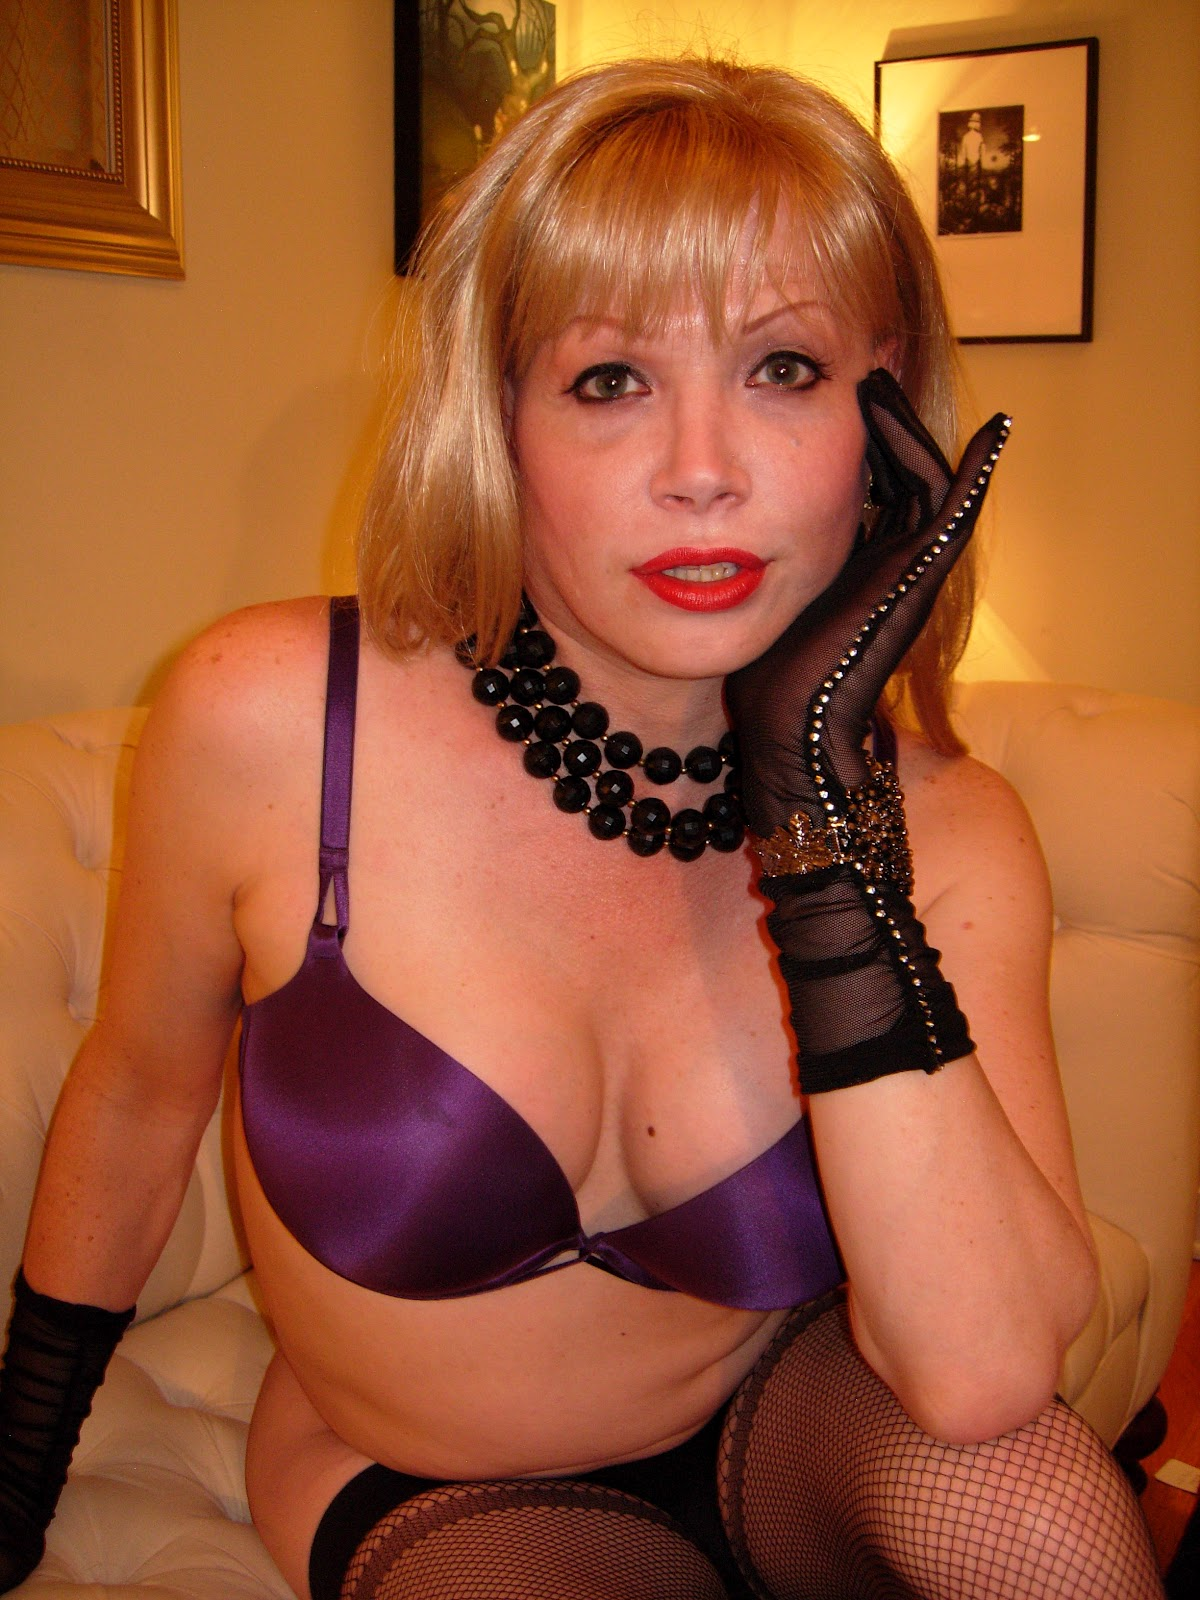 Shemale Escorts In Ny 916 | New York Transexual Brandy